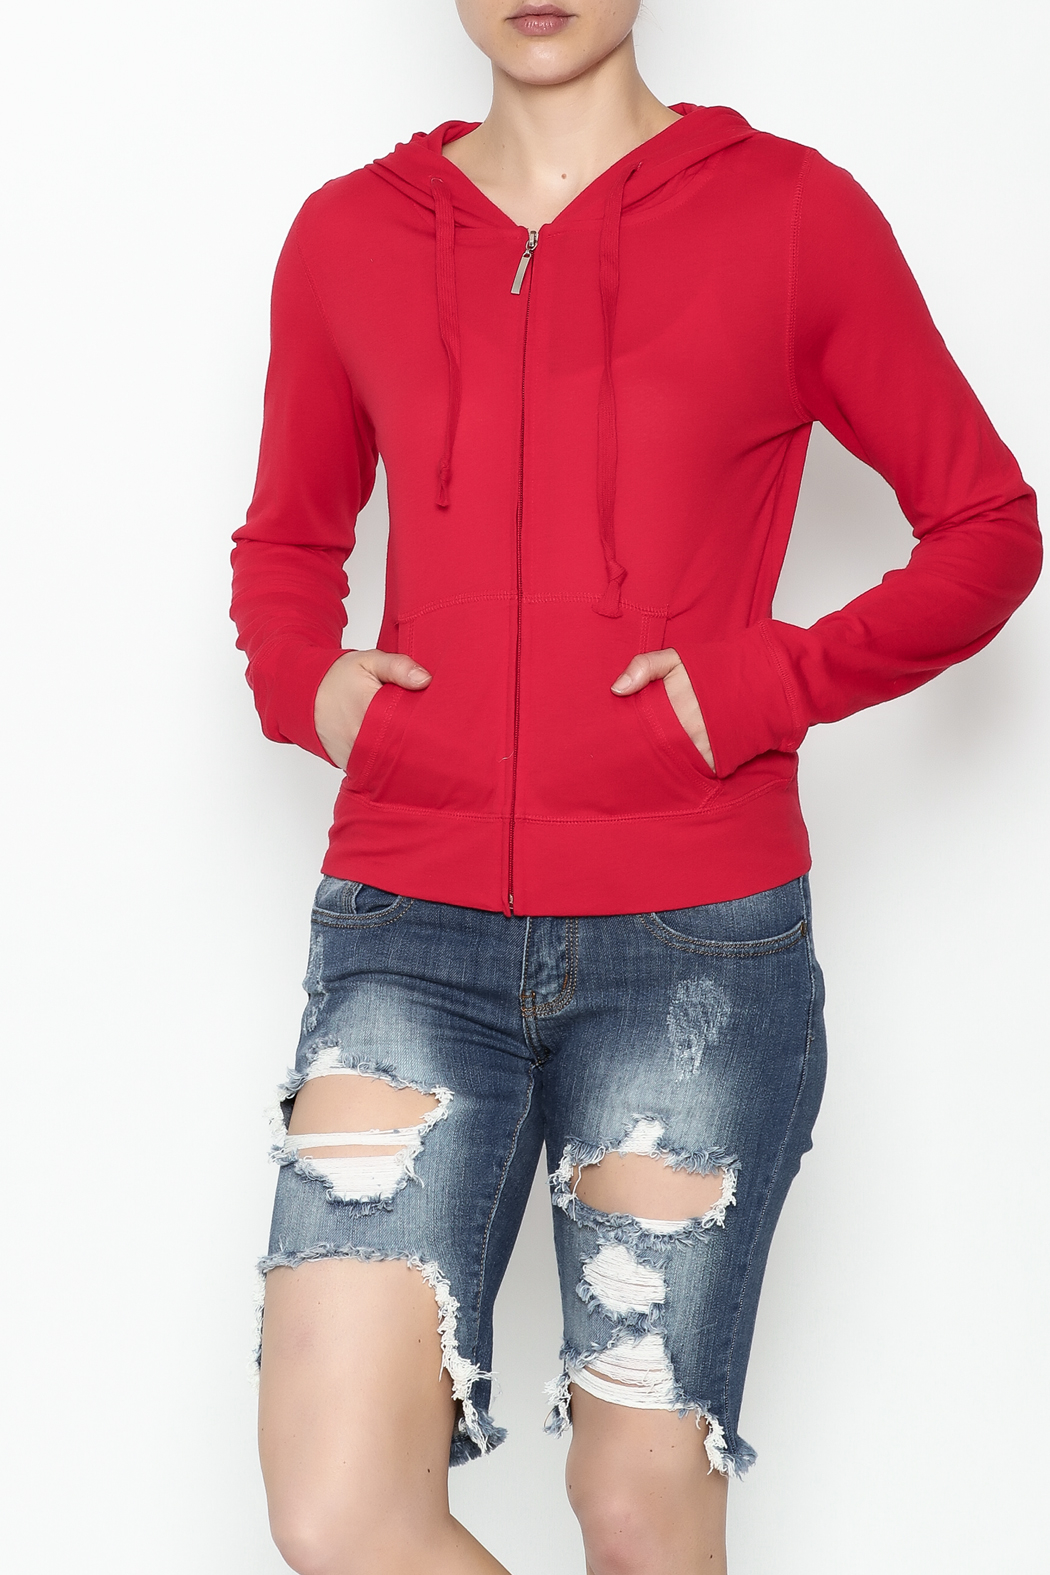 Daisy's Fashions Melange Zip Up Hoodie - Main Image